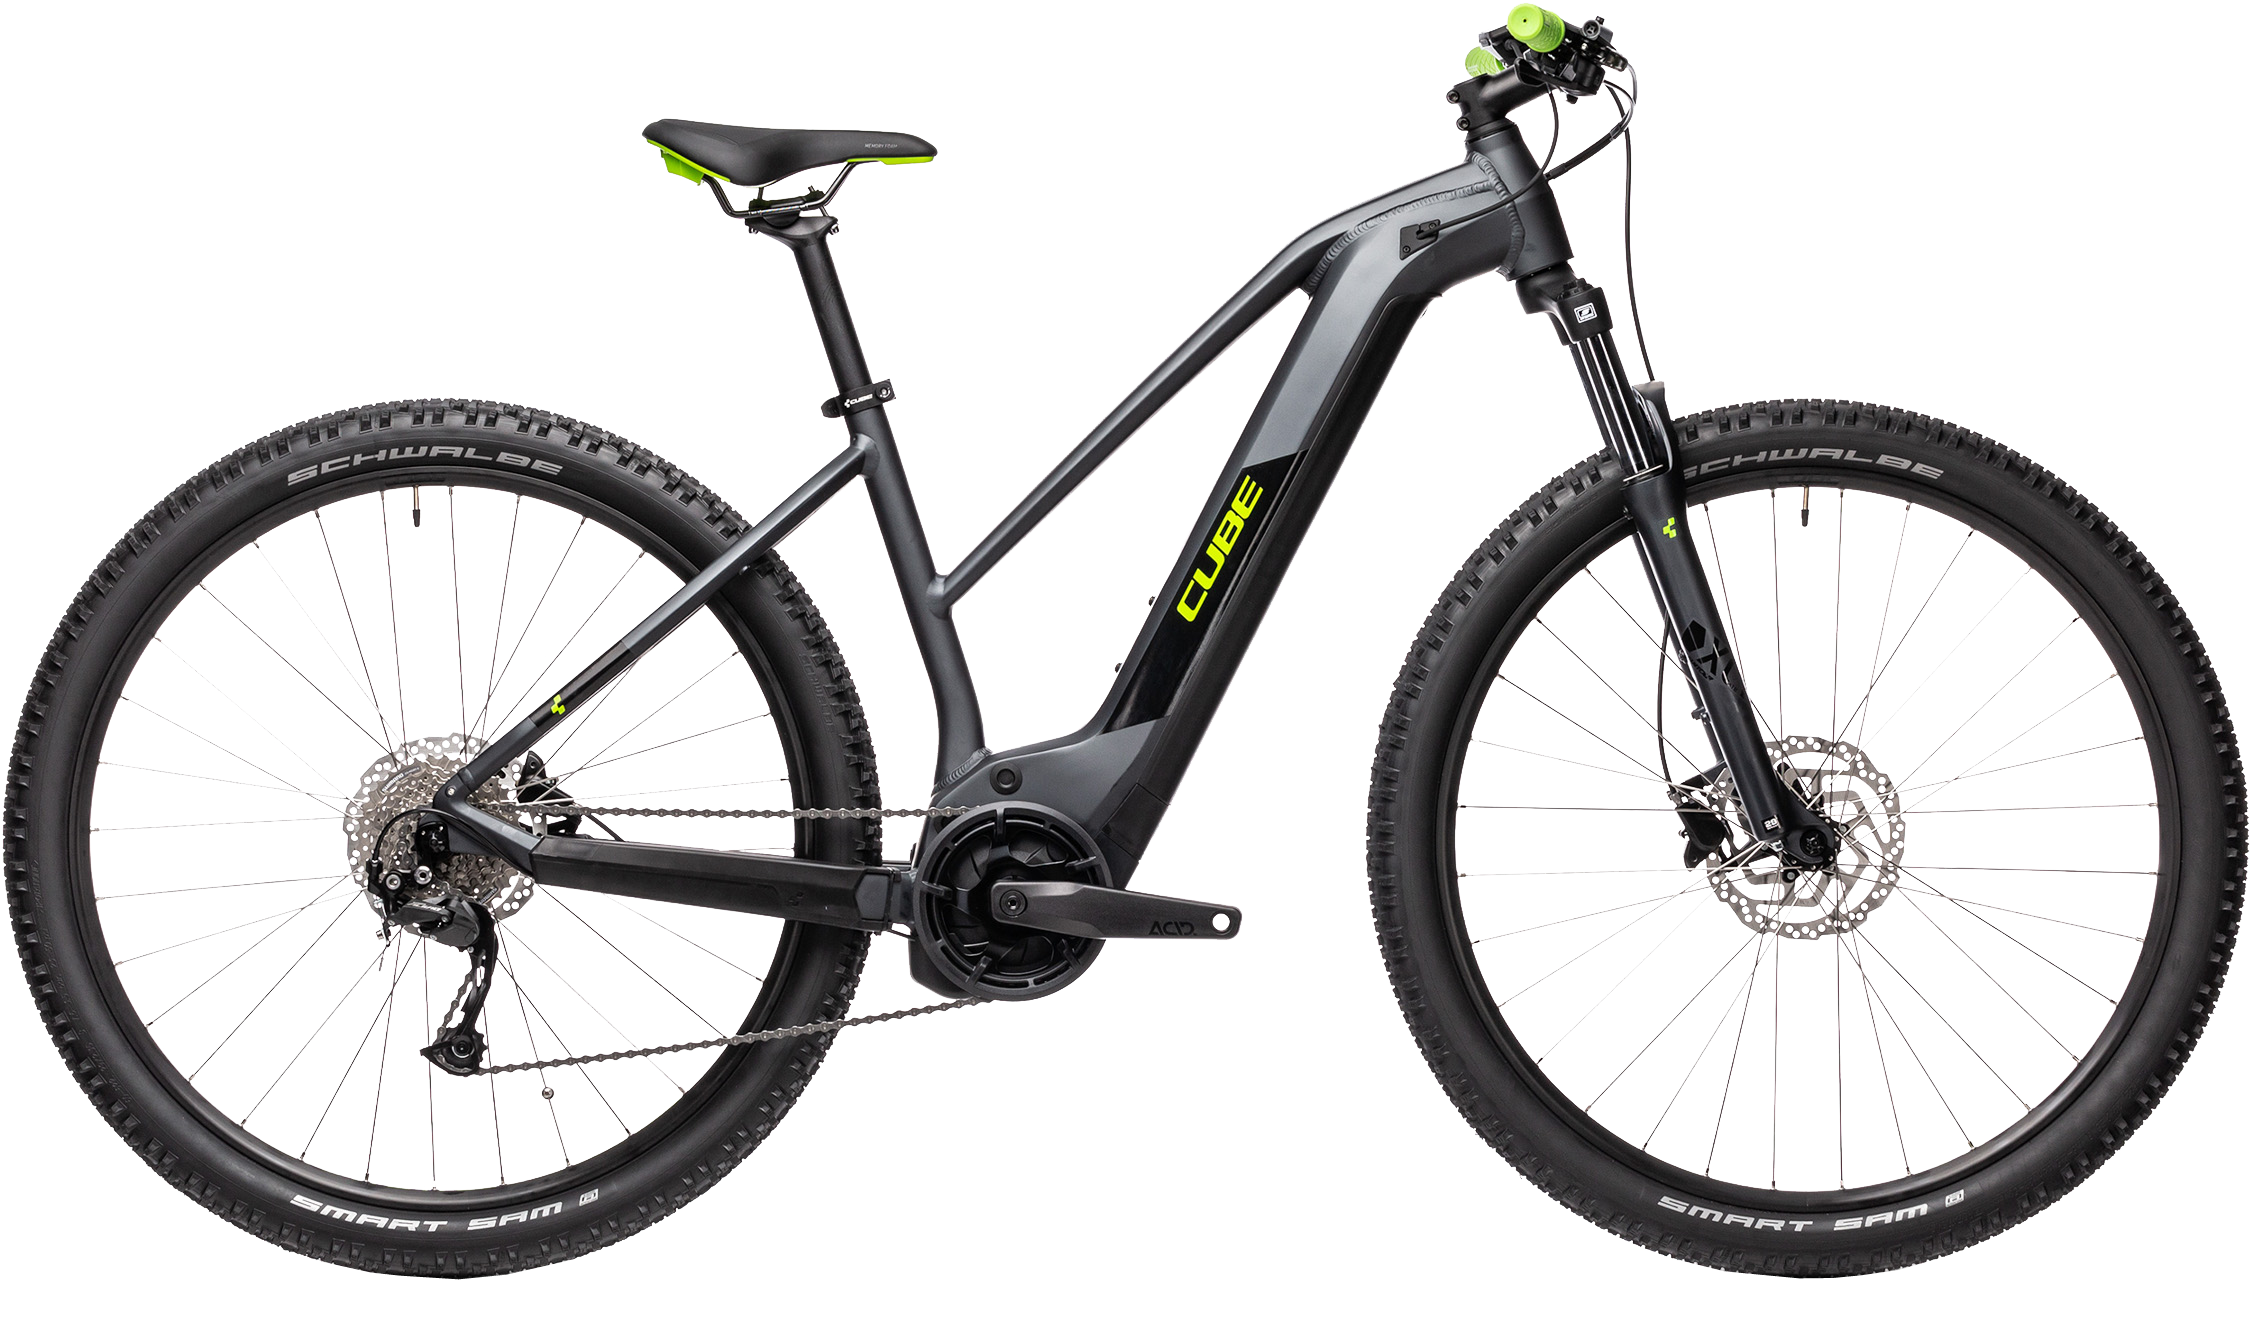 https://w8w5m3f8.stackpathcdn.com/20318/vtt-electrique-reaction-hybrid-performance-400-500-625wh-cadre-mixte.jpg